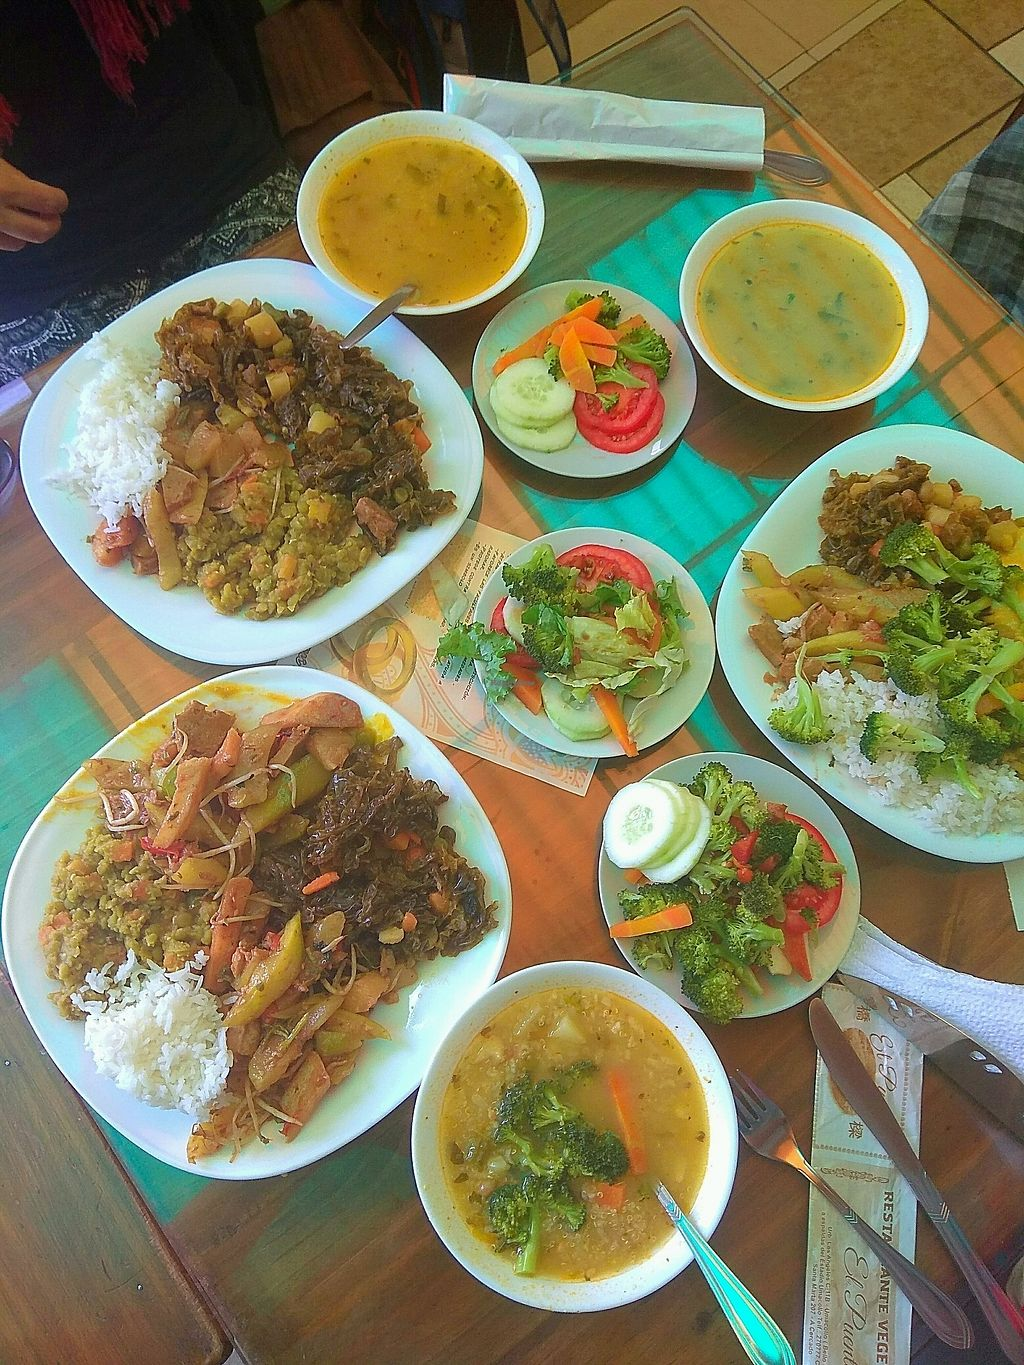 """Photo of El Puente 1  by <a href=""""/members/profile/WayneB"""">WayneB</a> <br/>4 options with kelp, salad, soup.  <br/> March 22, 2018  - <a href='/contact/abuse/image/51998/374512'>Report</a>"""